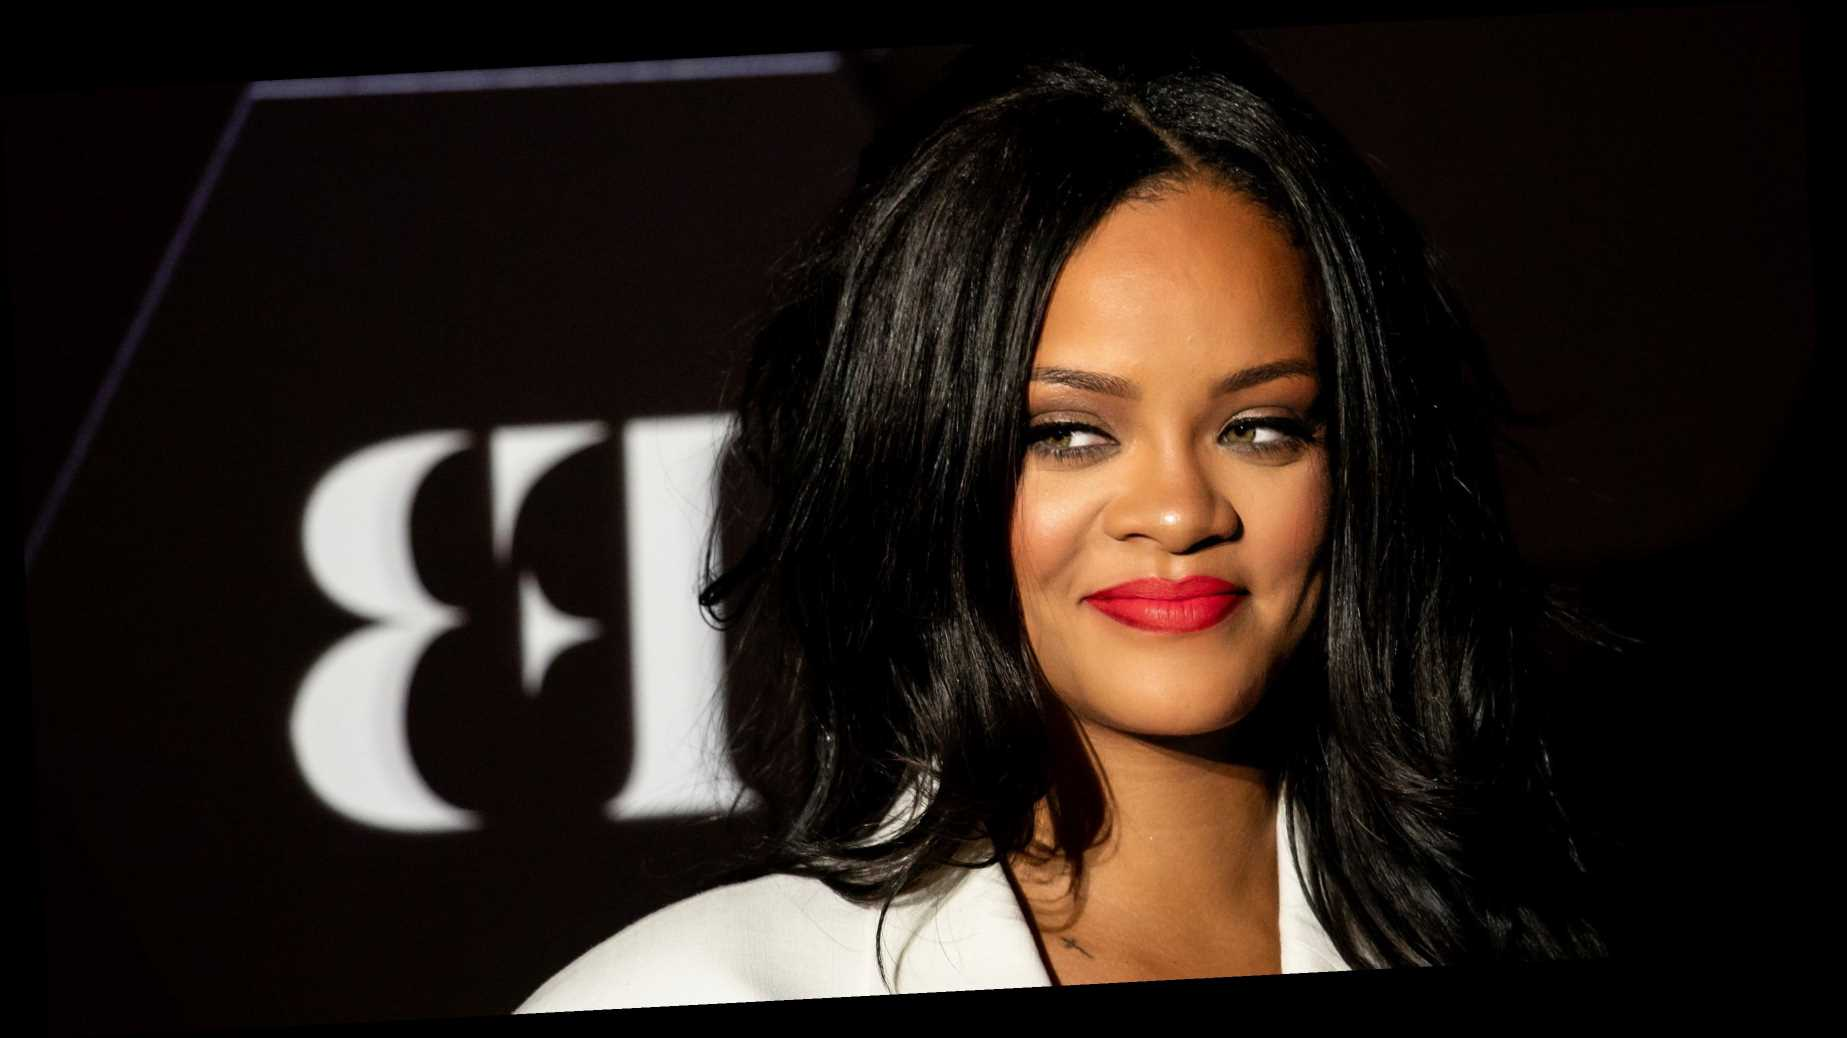 The business of being Rihanna